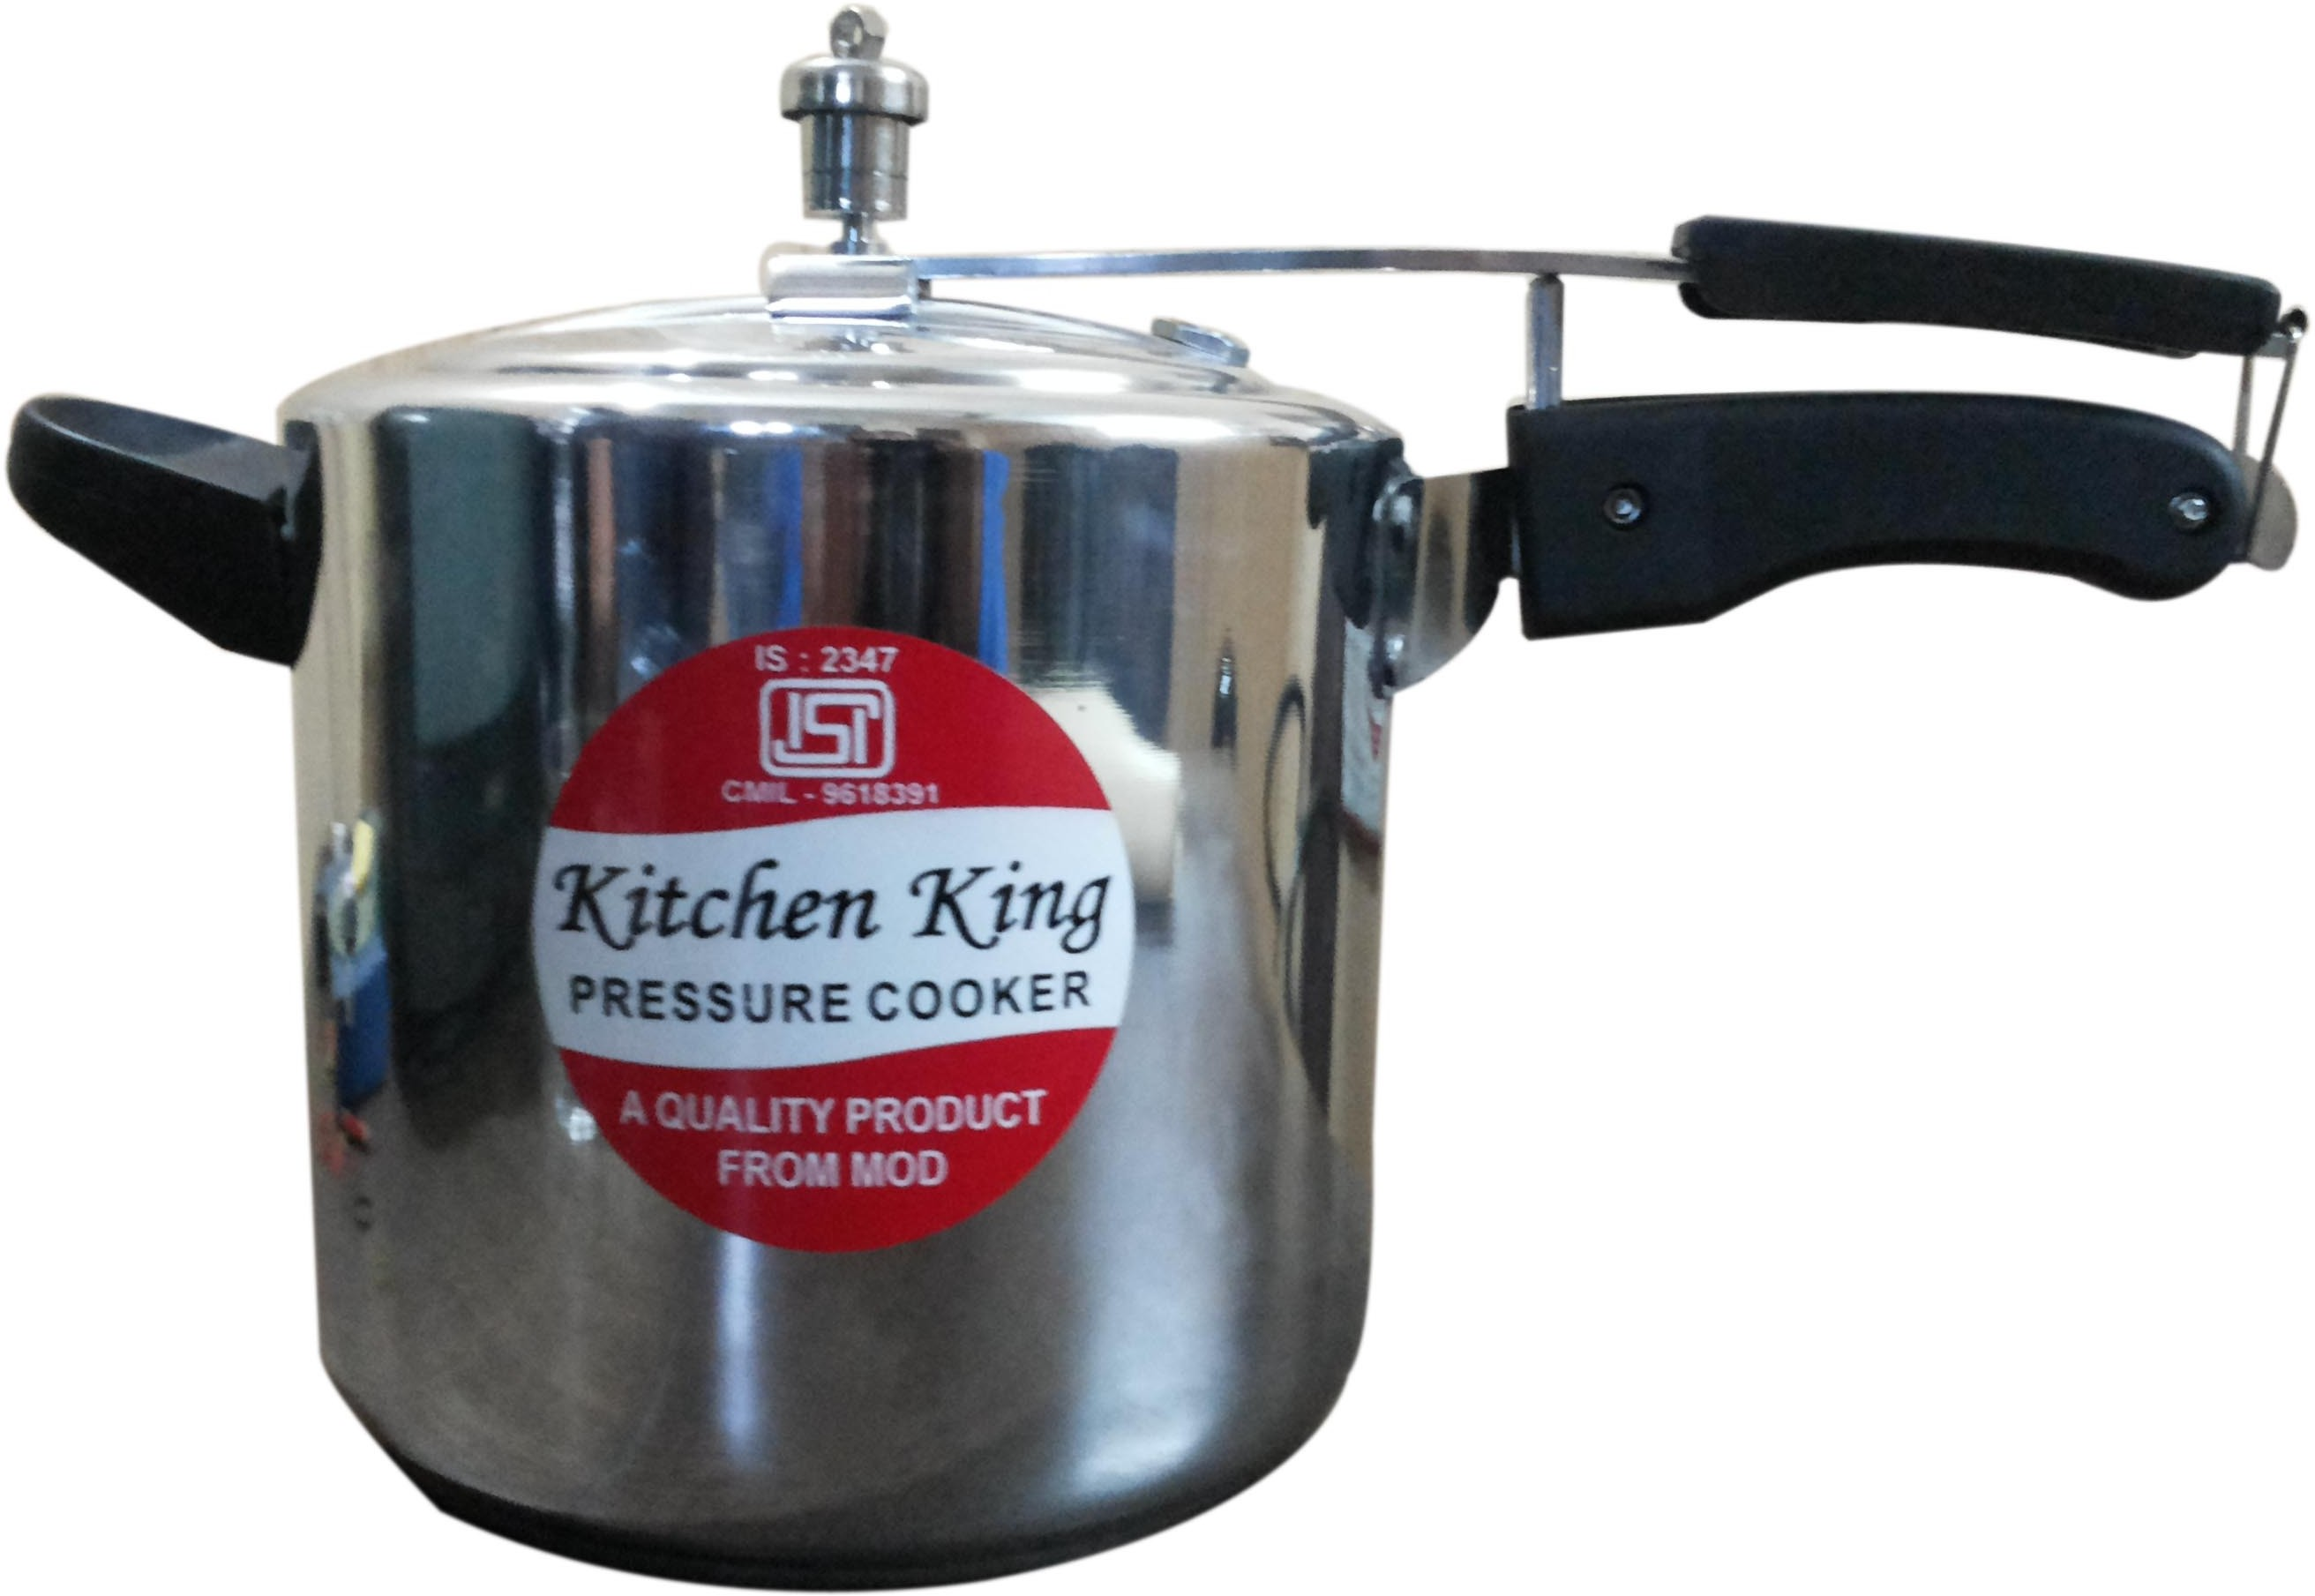 KITCHEN KING 7 L PRESSURE COOKER Reviews Price in India